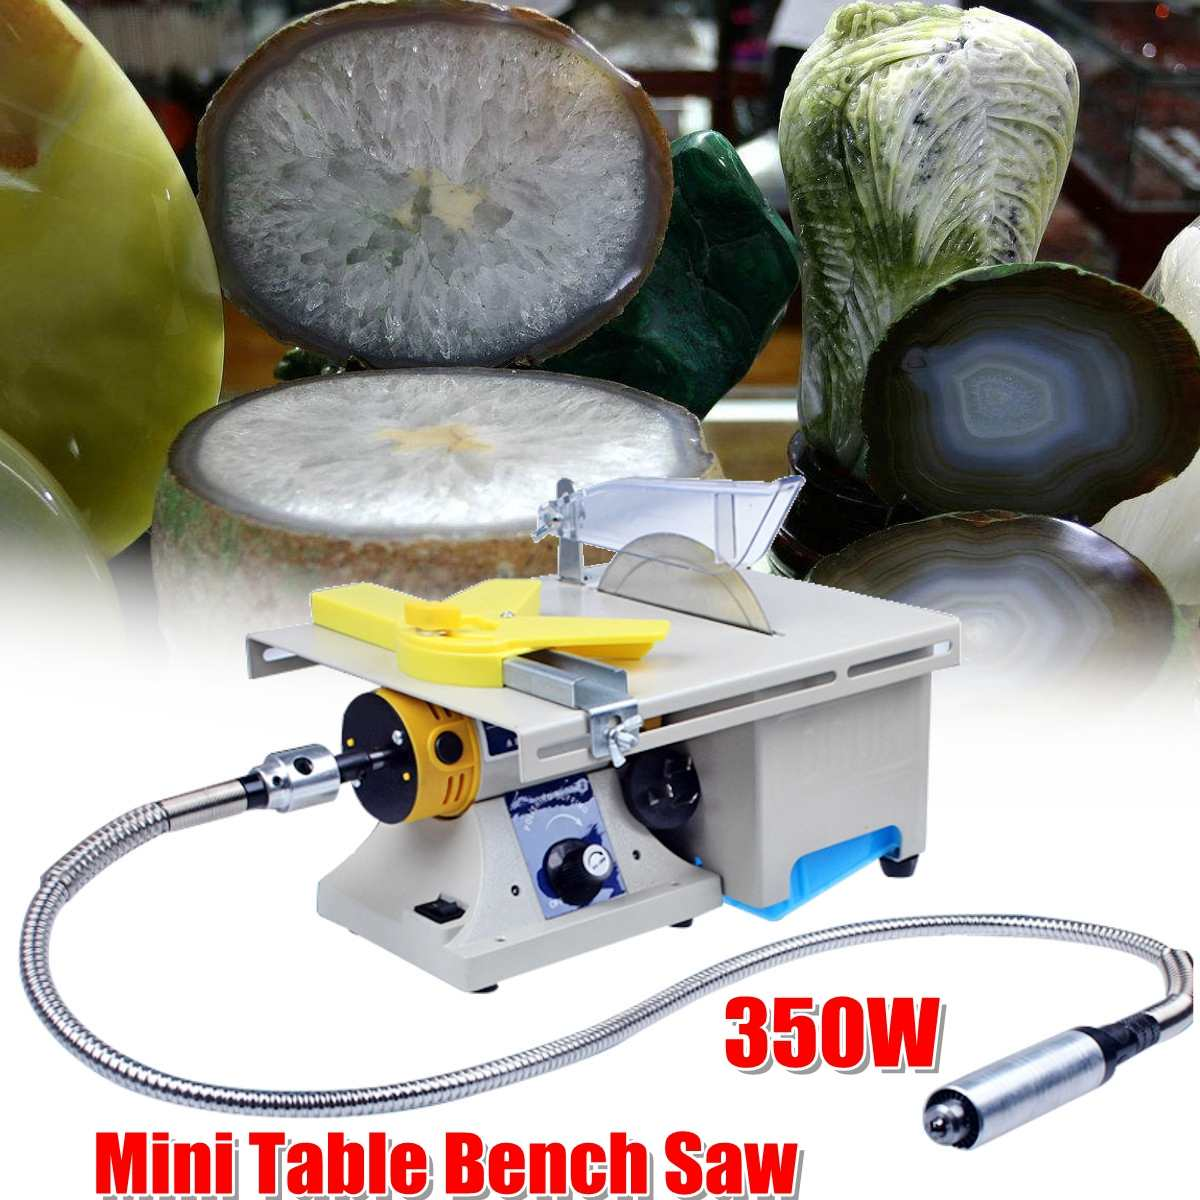 350W Mini Table Bench Saw Electric Grinding Engraving Machine Jade Wood Stone Polishing Router For Bodhi Ivory Carving Polisher